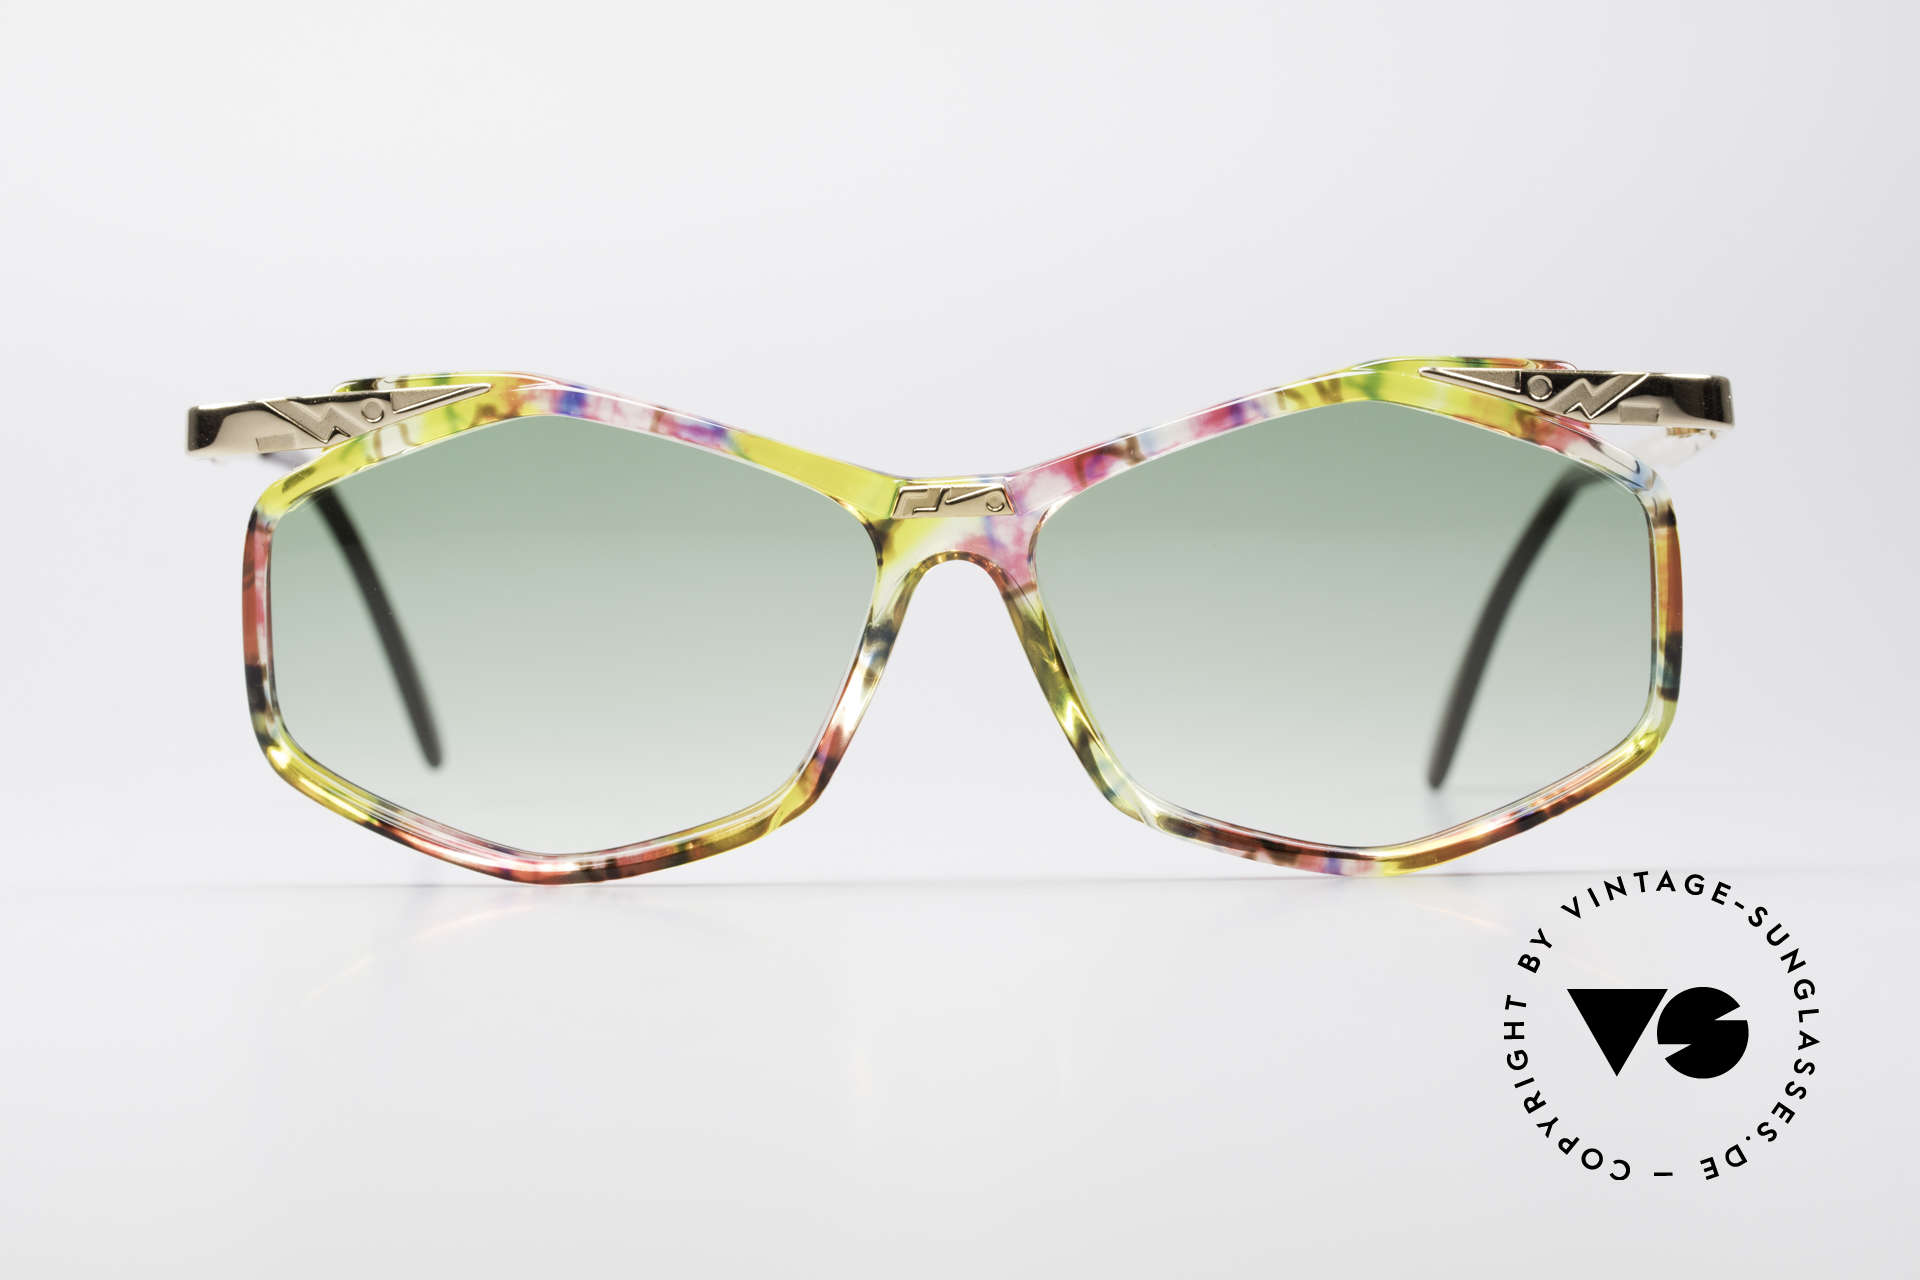 Cazal 354 Vintage 90s Sunglasses Women, 1st class craftsmanship and very pleasant to wear, Made for Women